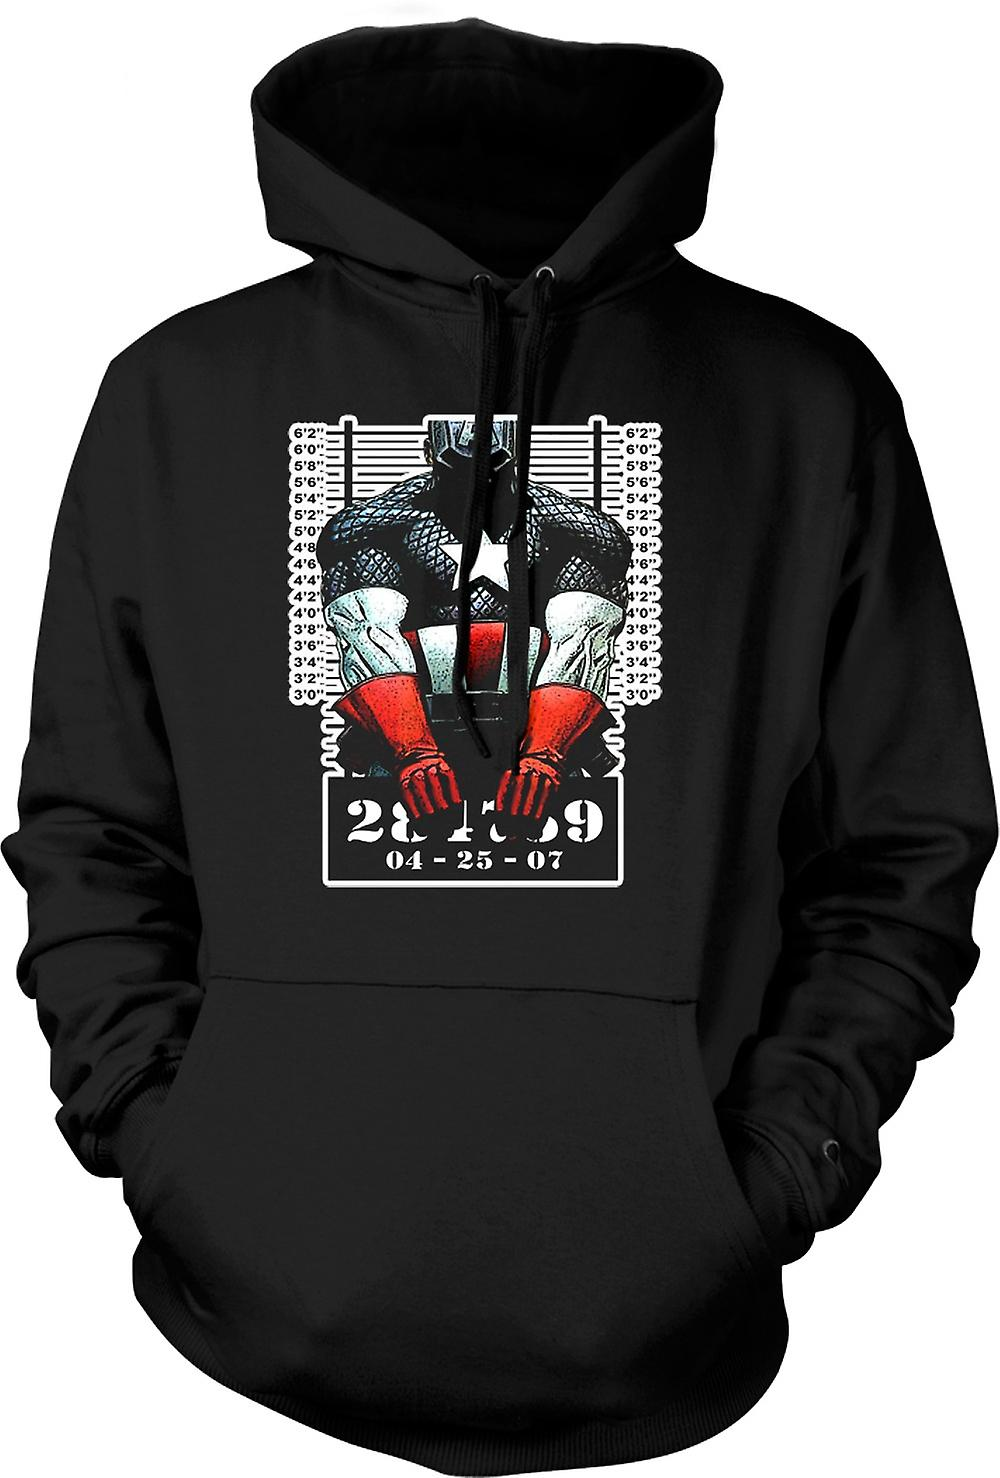 Mens Hoodie - Captain America - Cartoon - Mug Shot